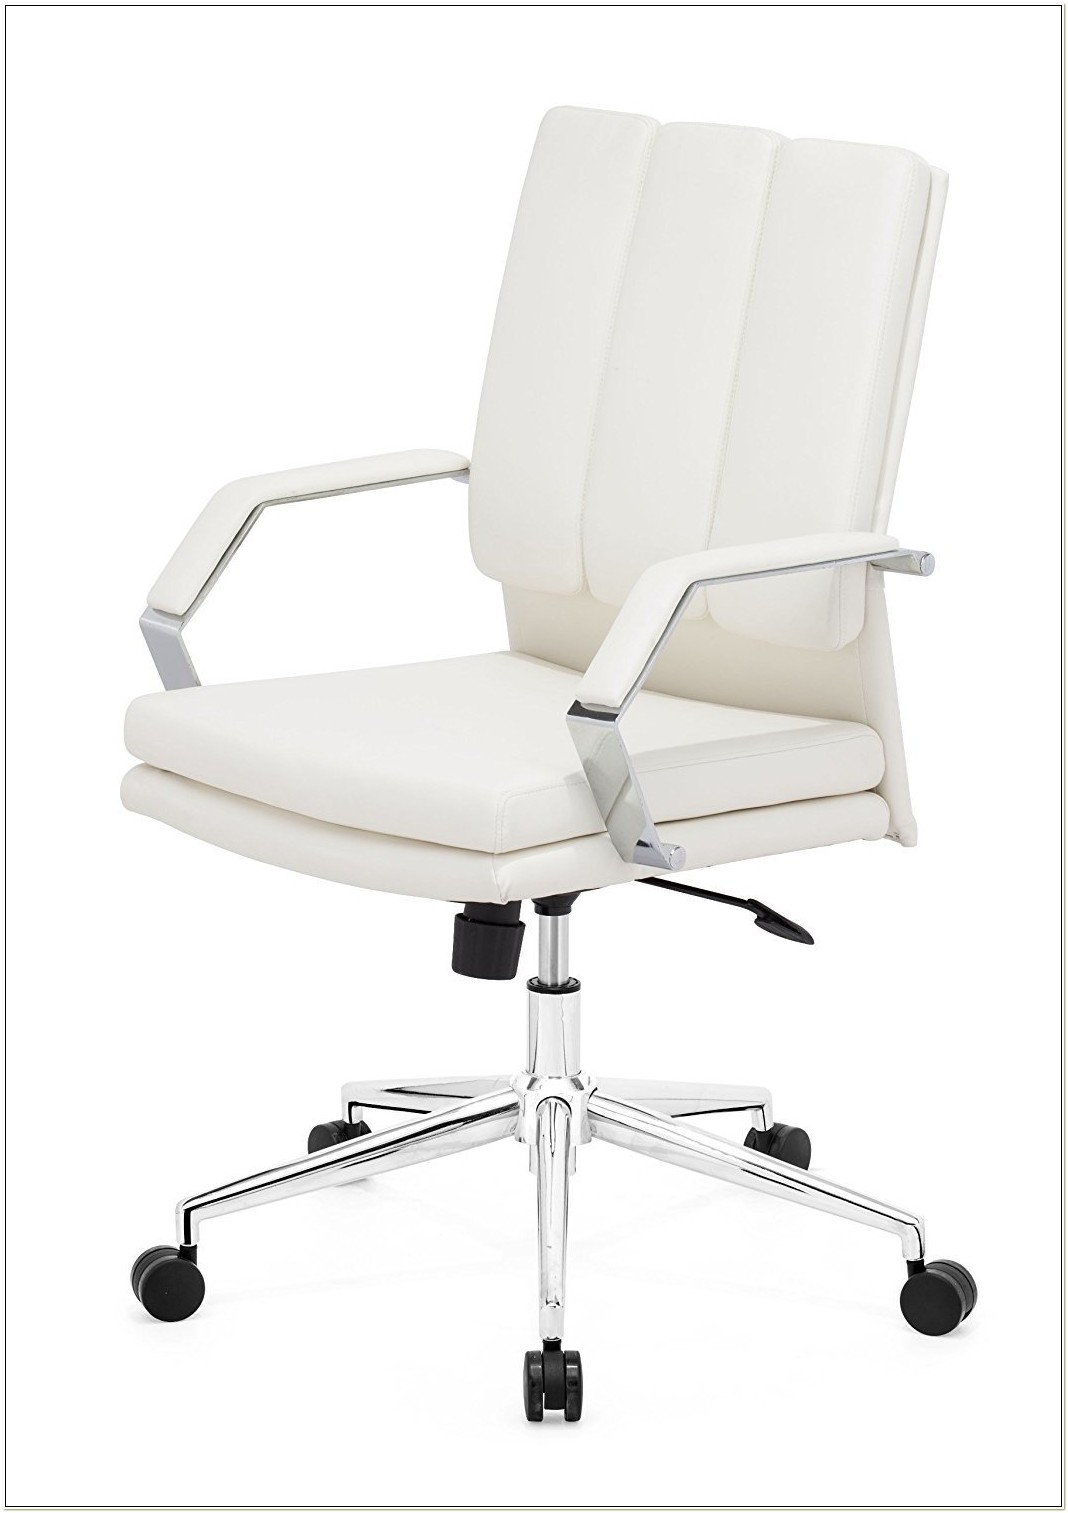 Zuo Director Pro Office Chair